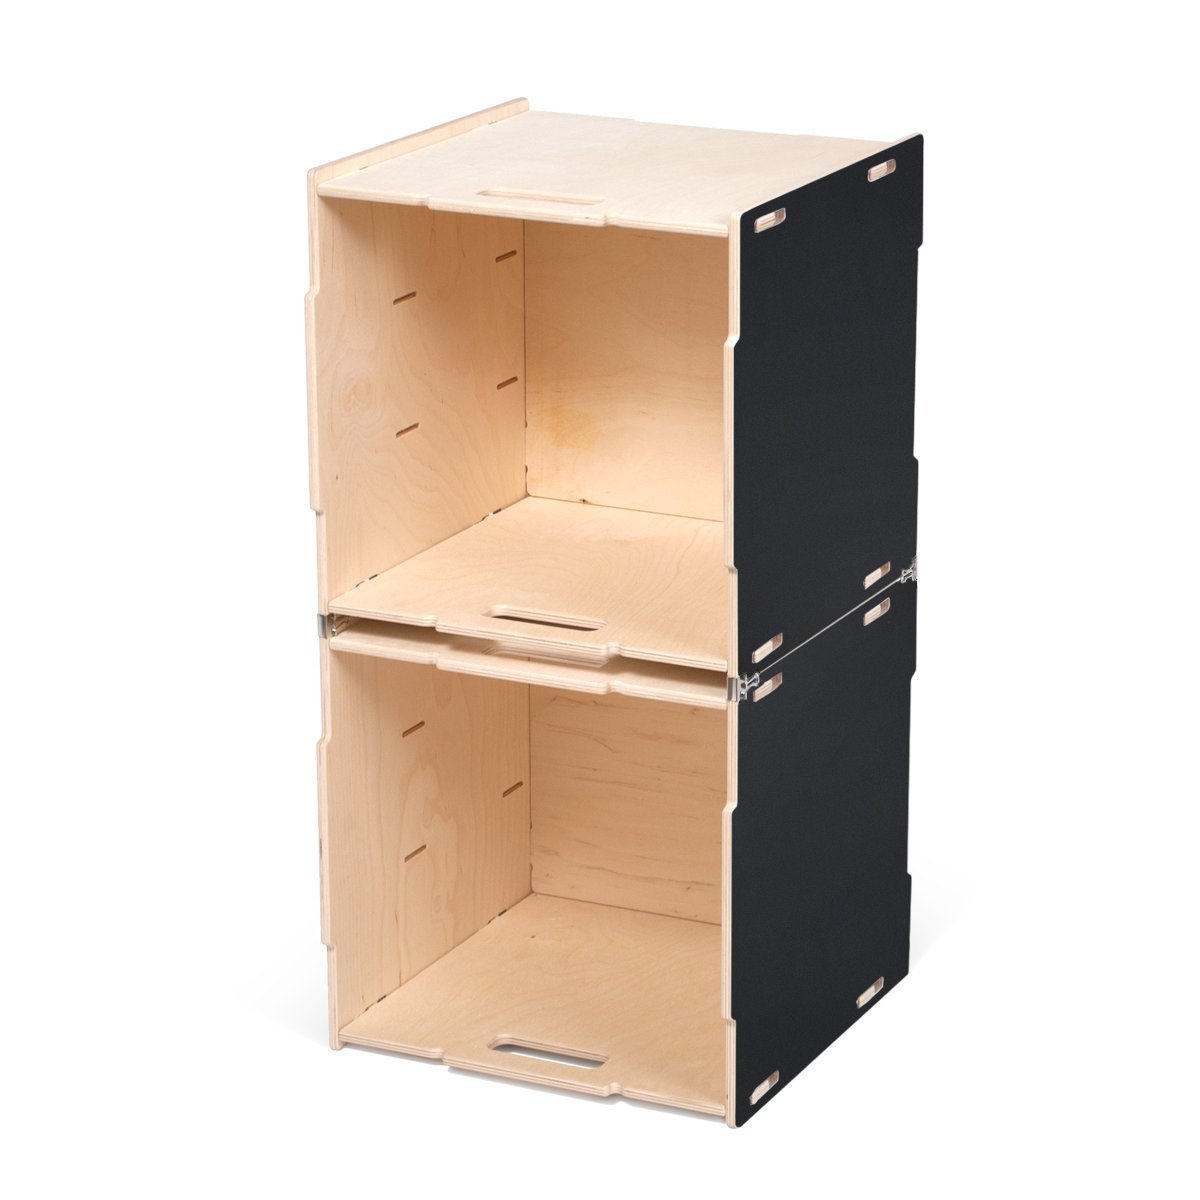 Stacking Crates Stacking Cubby (Two Crates) ブラック CR_2SC-BLK B06Y472XZN Stacking Cubby (Two Crates) Black Painted Baltic Birch Black Painted Baltic Birch Stacking Cubby (Two Crates)